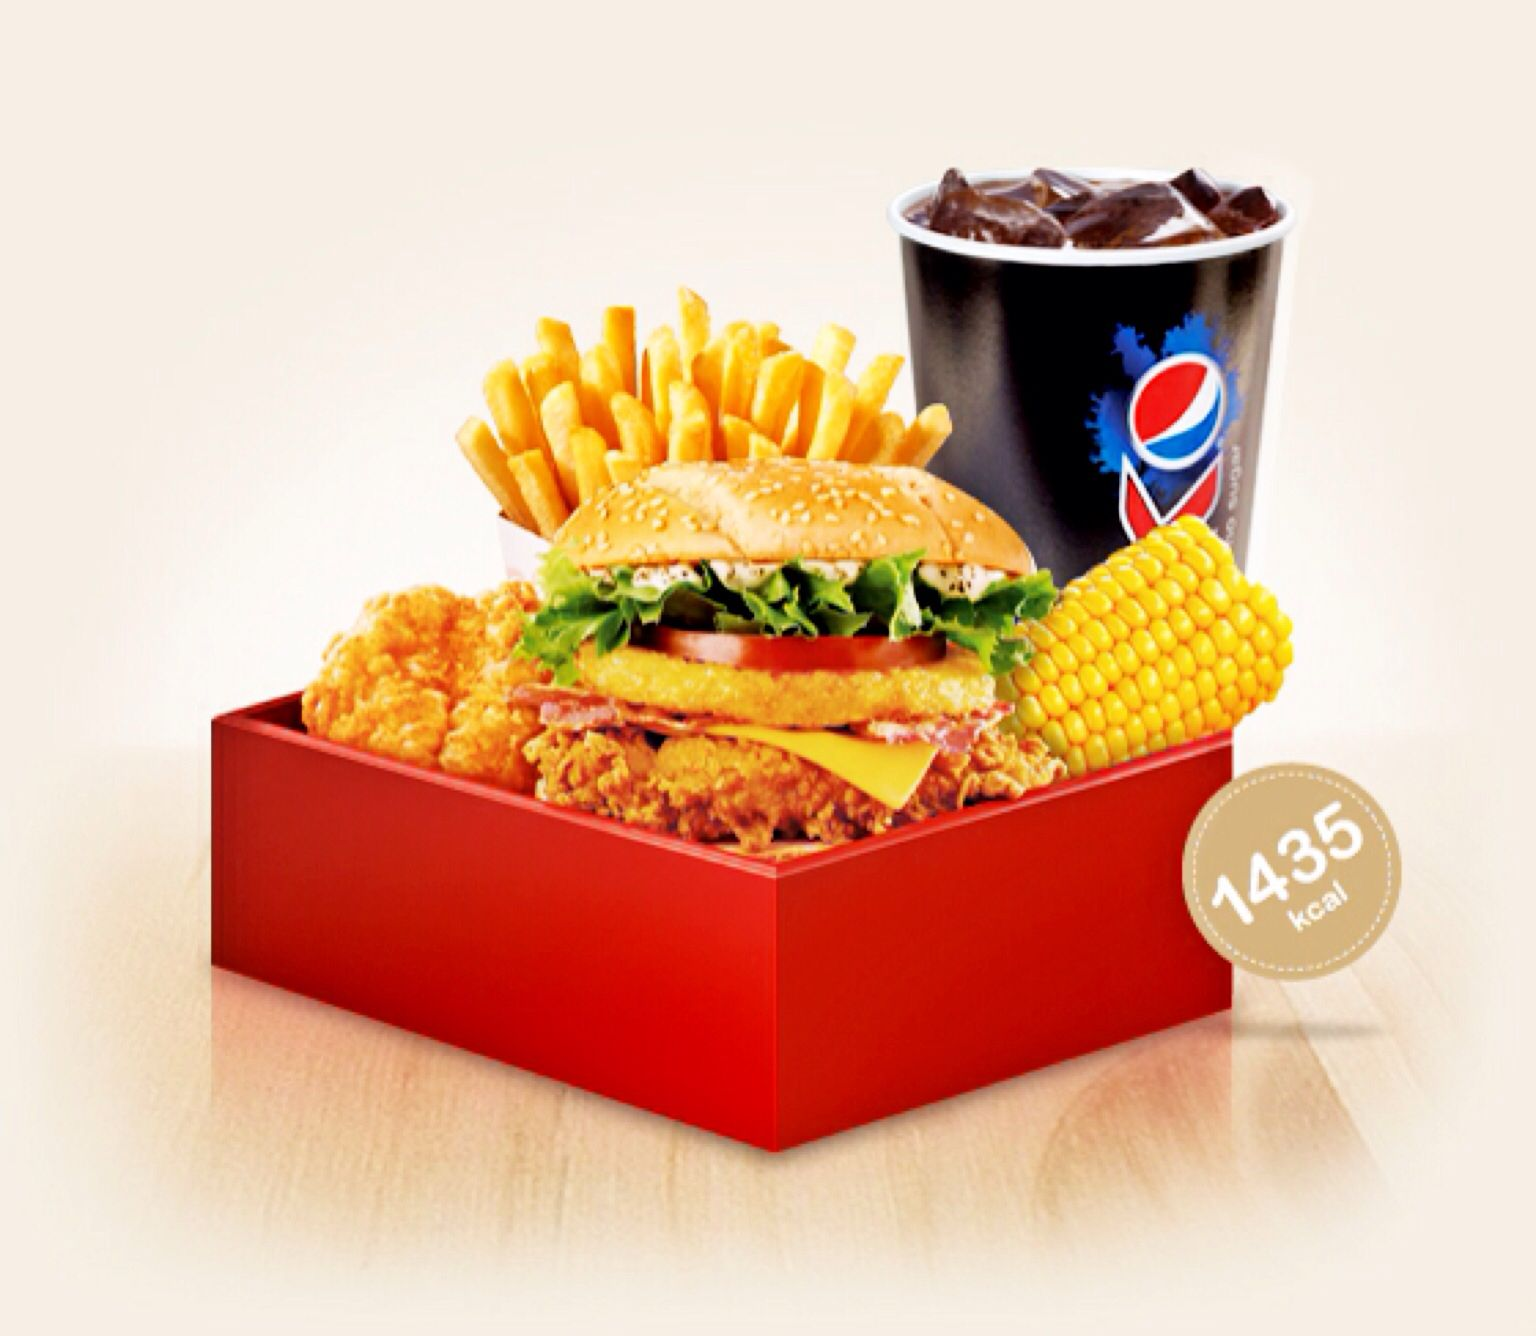 KENTUCKY FRIED CHICKEN'S BIG DADDY BOX?! THAT IS WHAT I AM